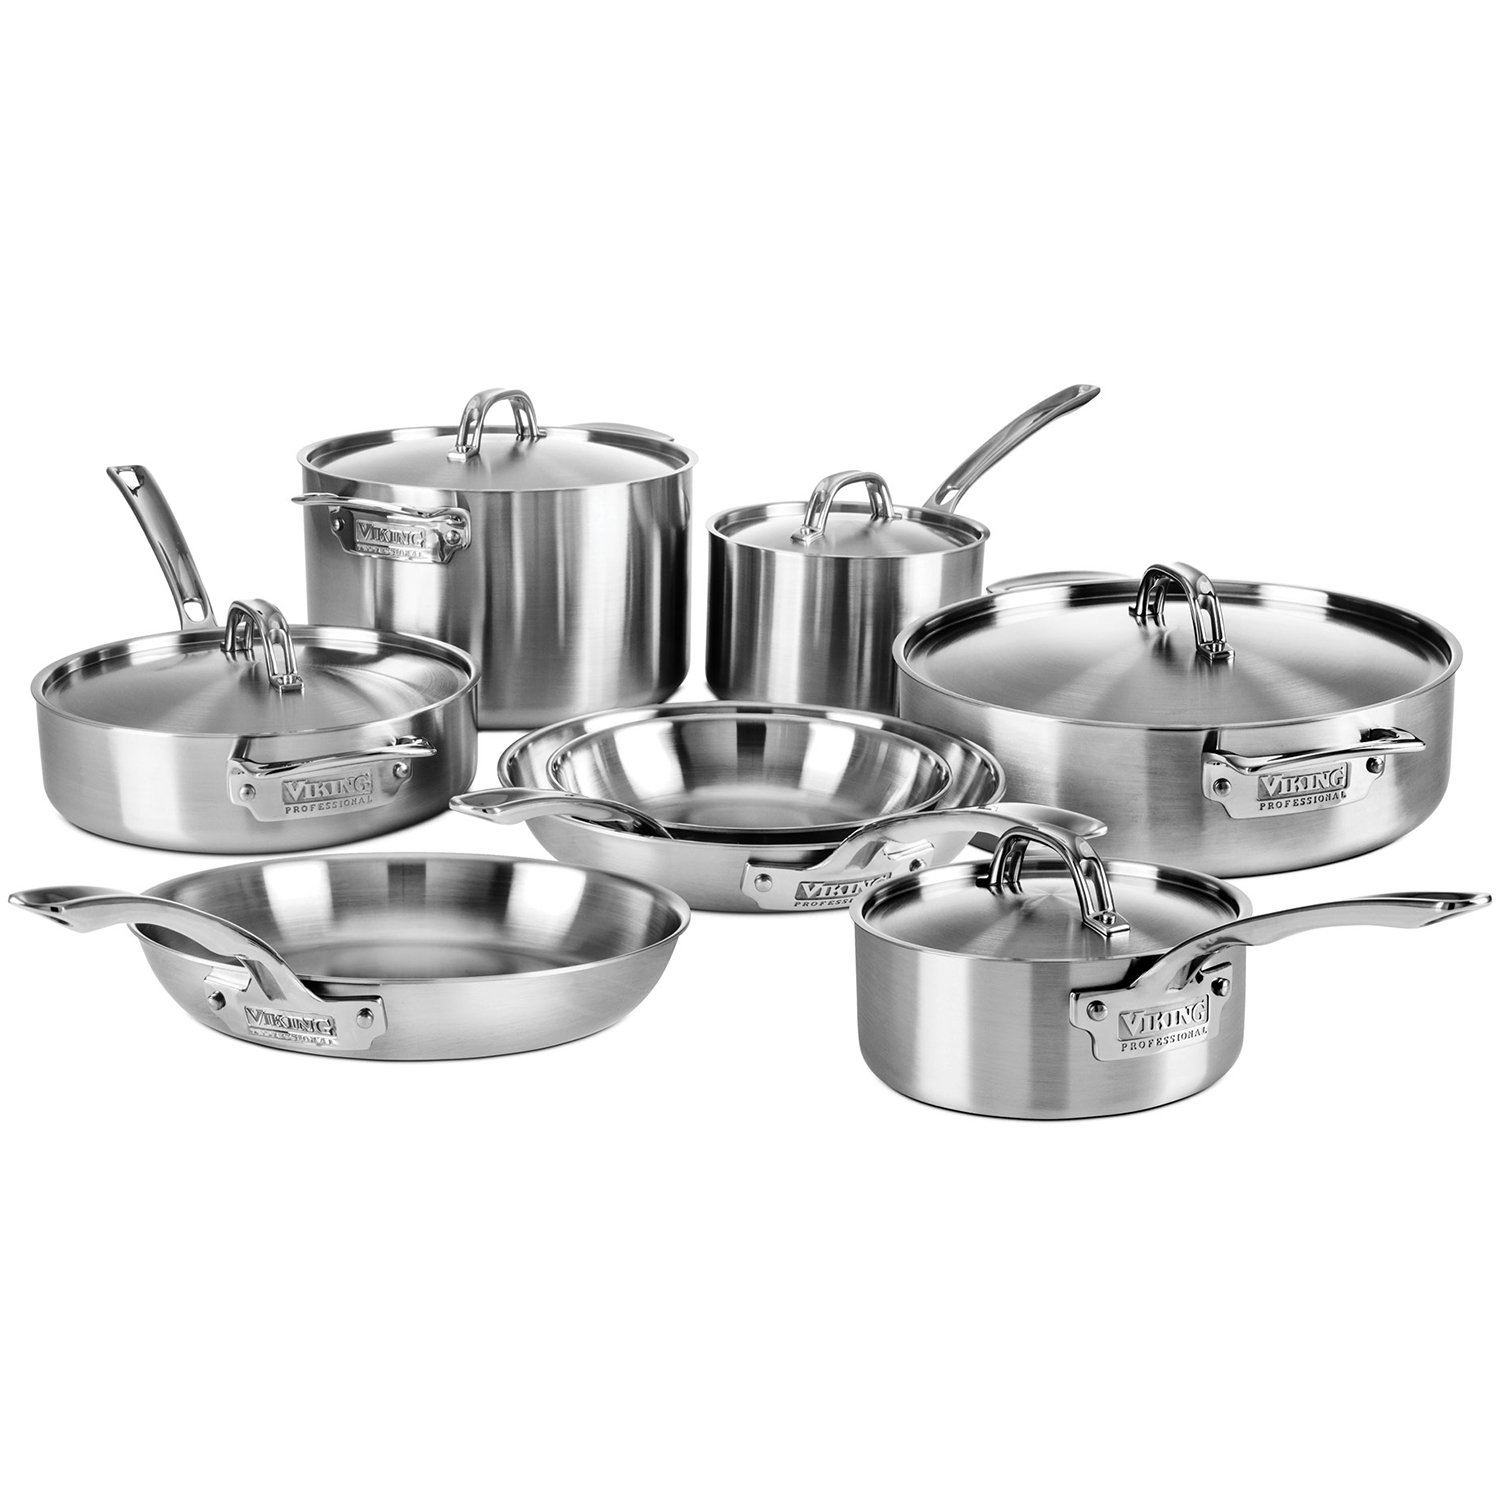 Viking Professional 5-ply Stainless Steel Cookware Set, 13-piece by Viking